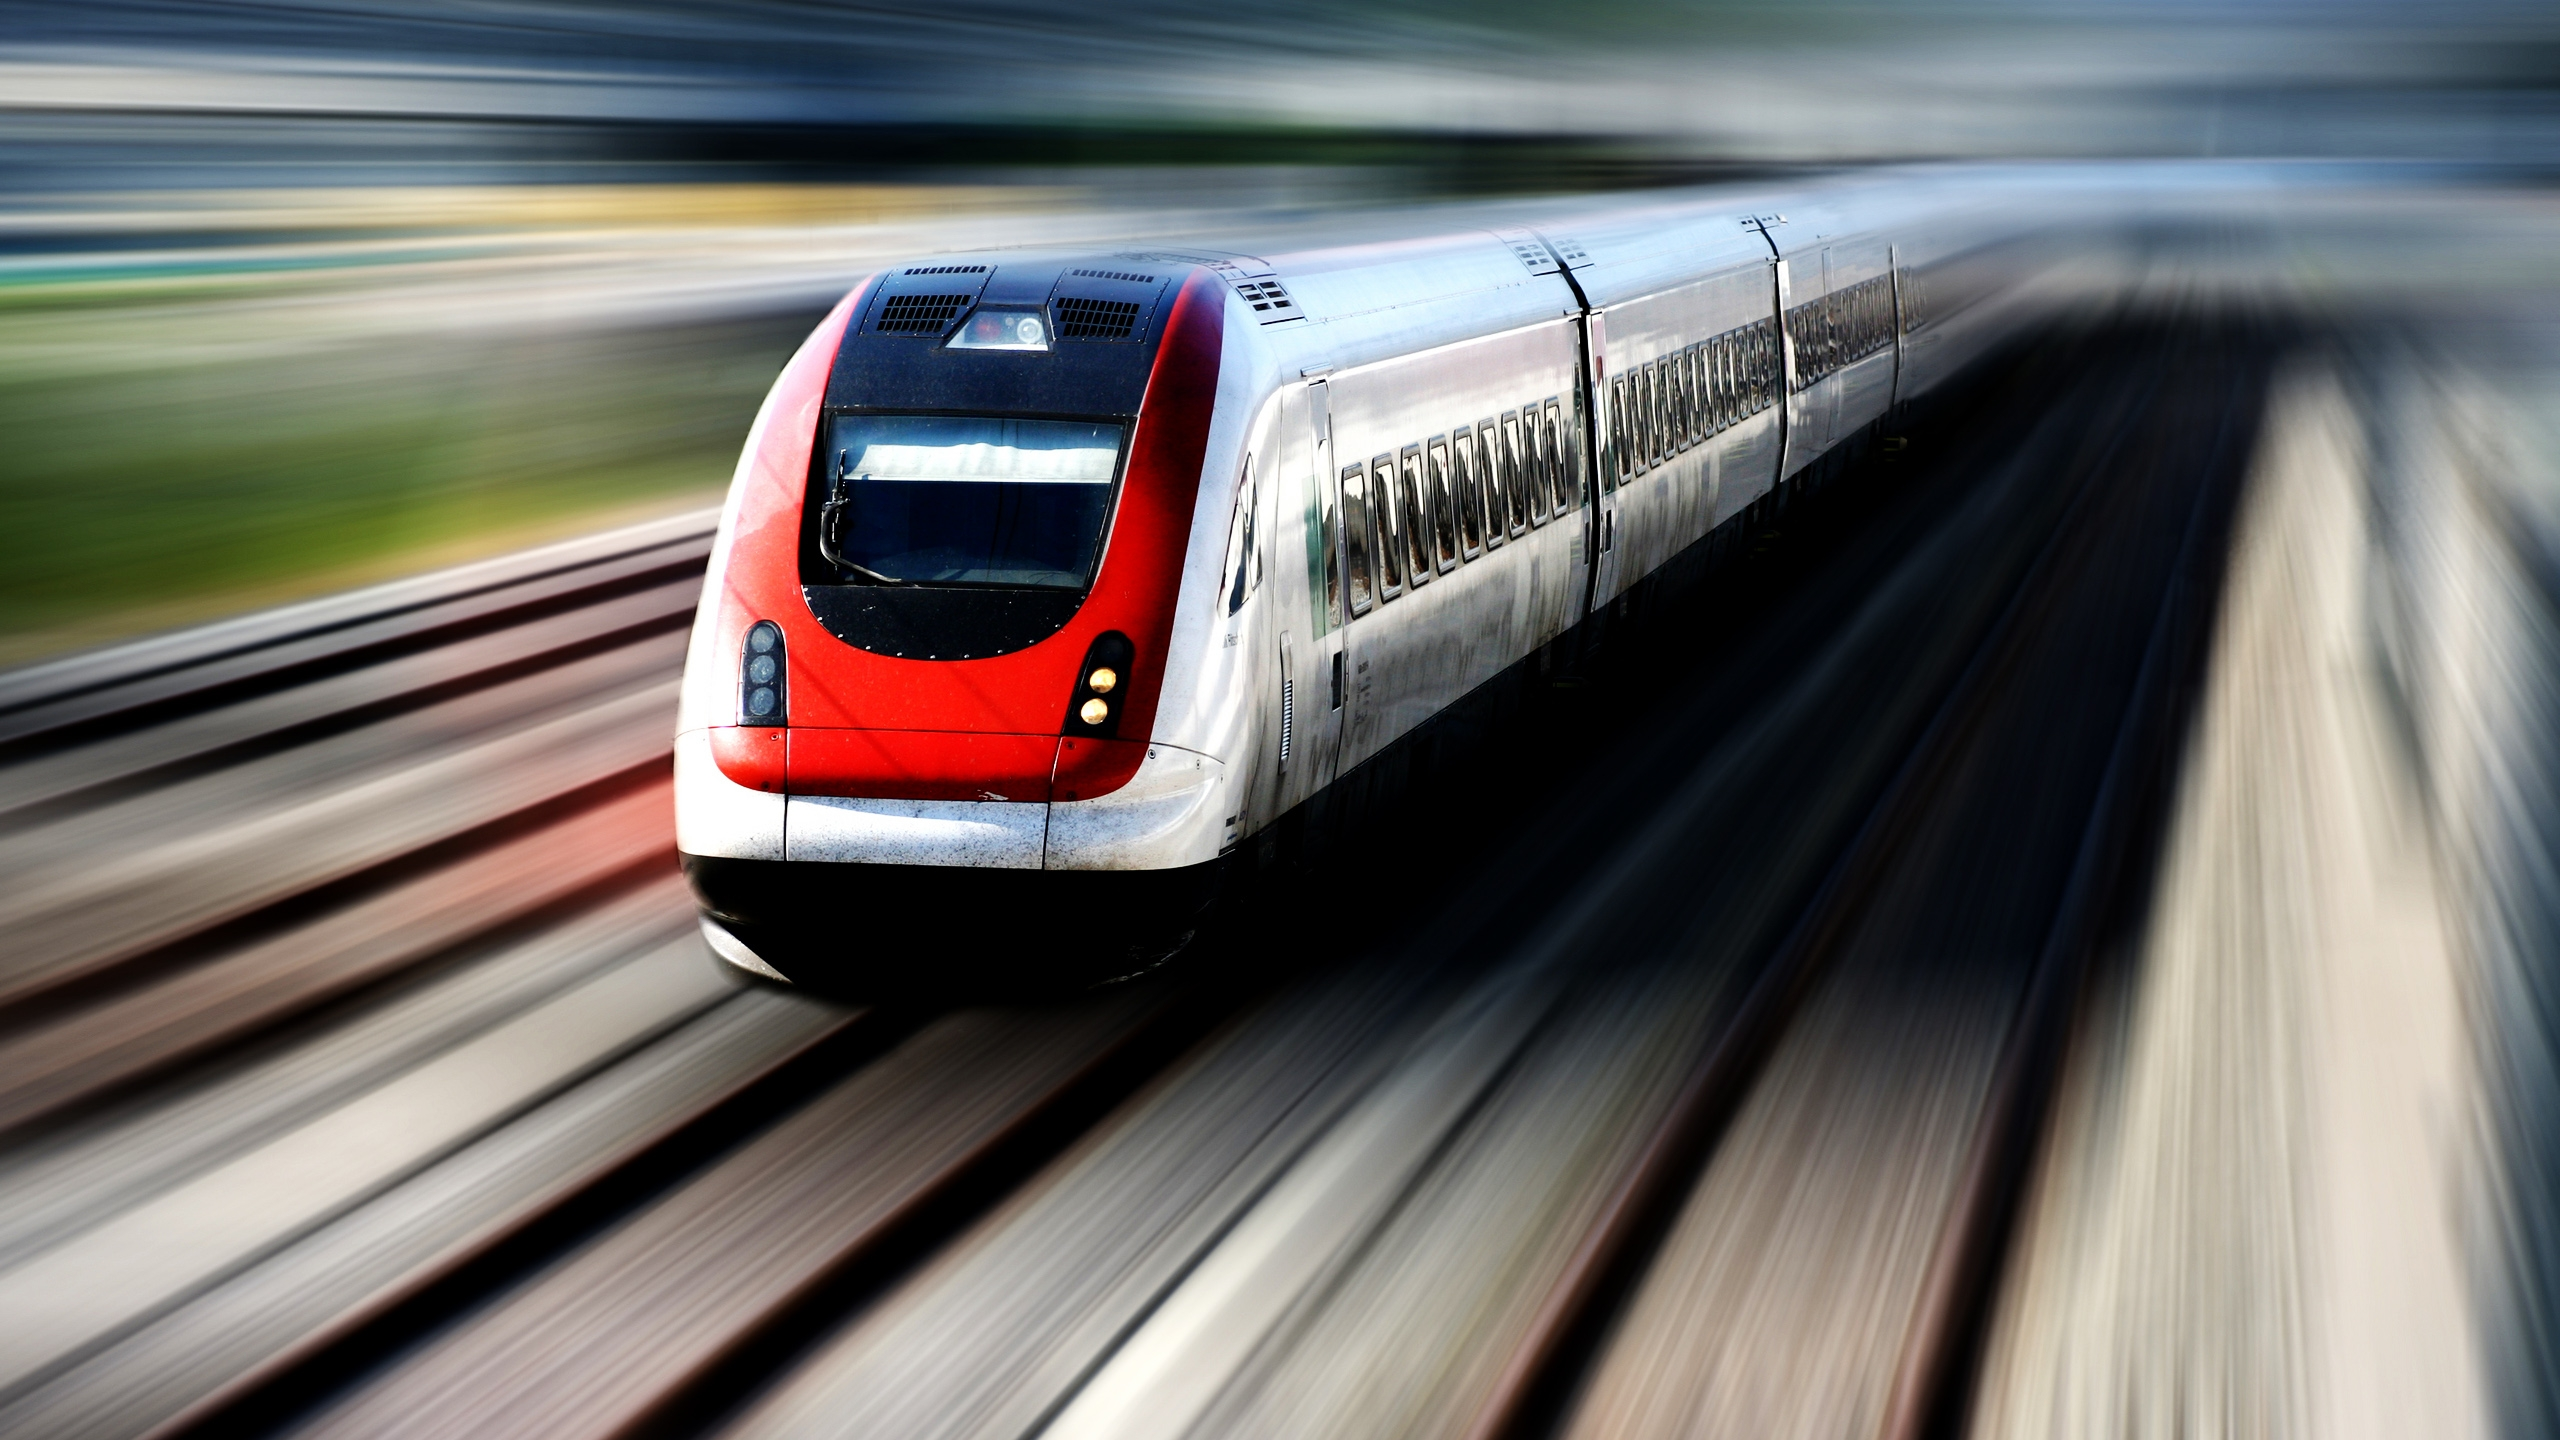 2560x1440 Speed Train